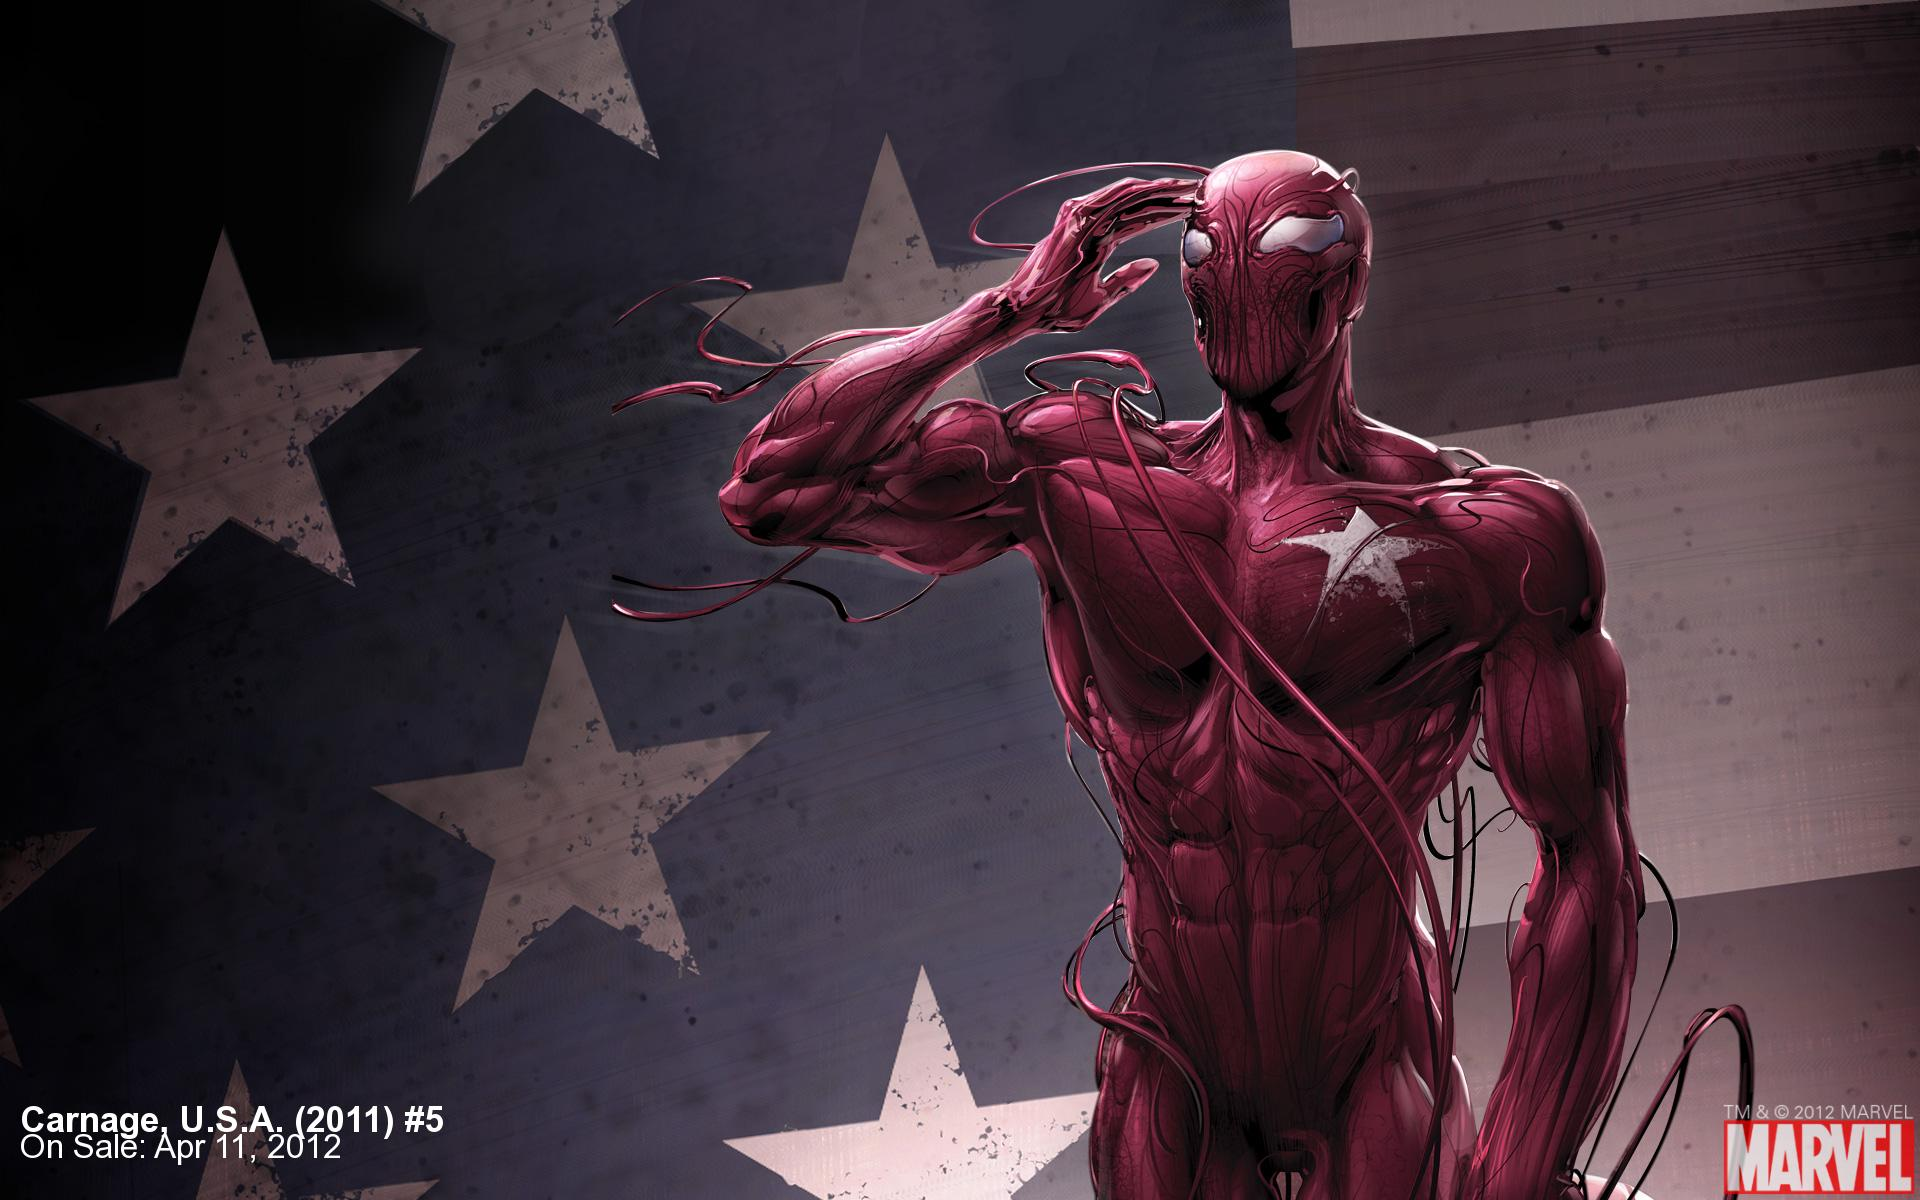 Carnage USA 2011 5 Marvelcom 1920x1200